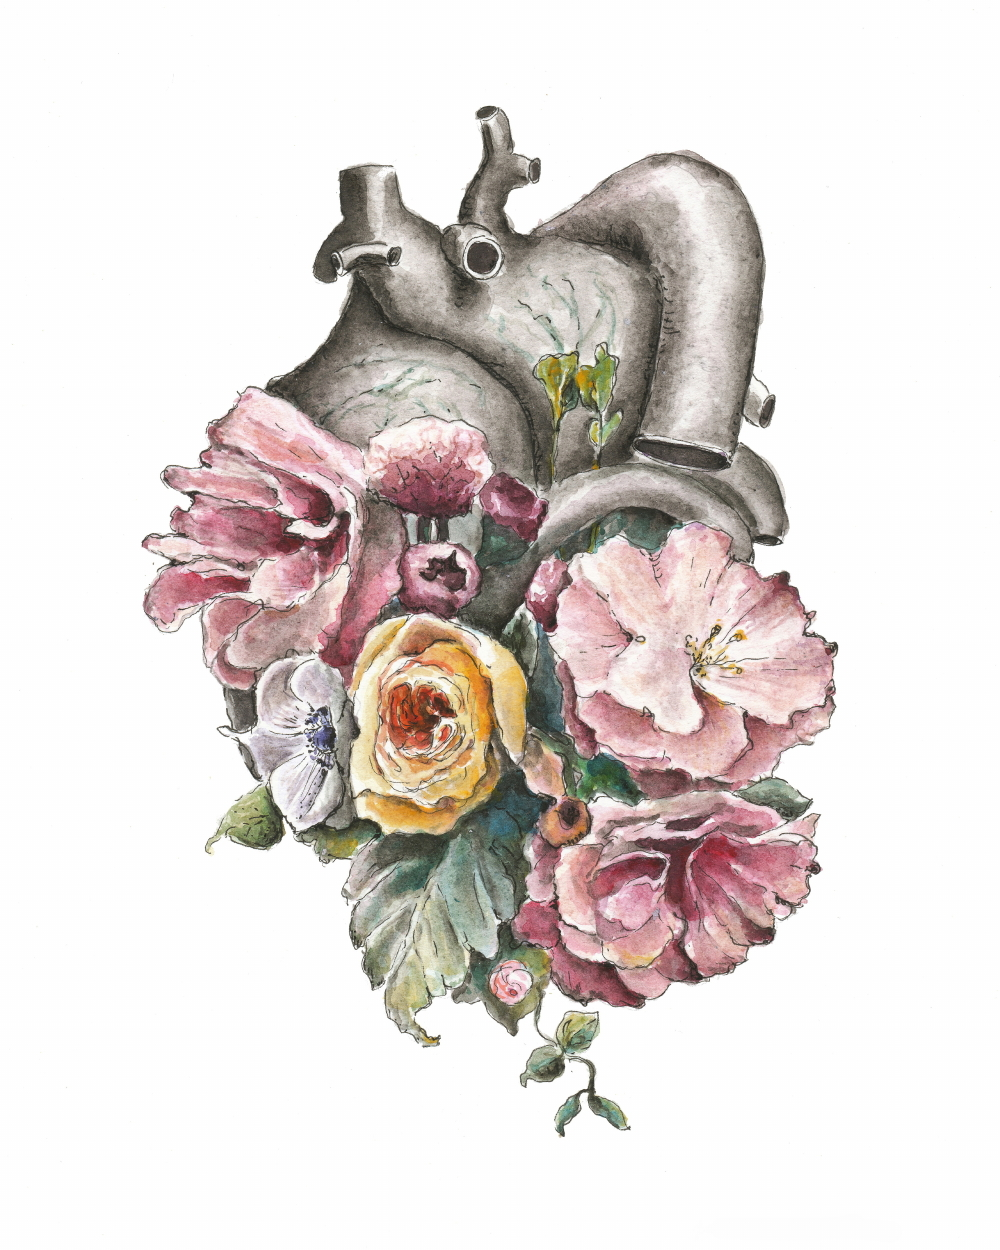 Floral Anatomy Heart (ITEM NO: 011)  Print Size: 8x10 inches  $12.50 Wholesale at 50% off  $25 RRP